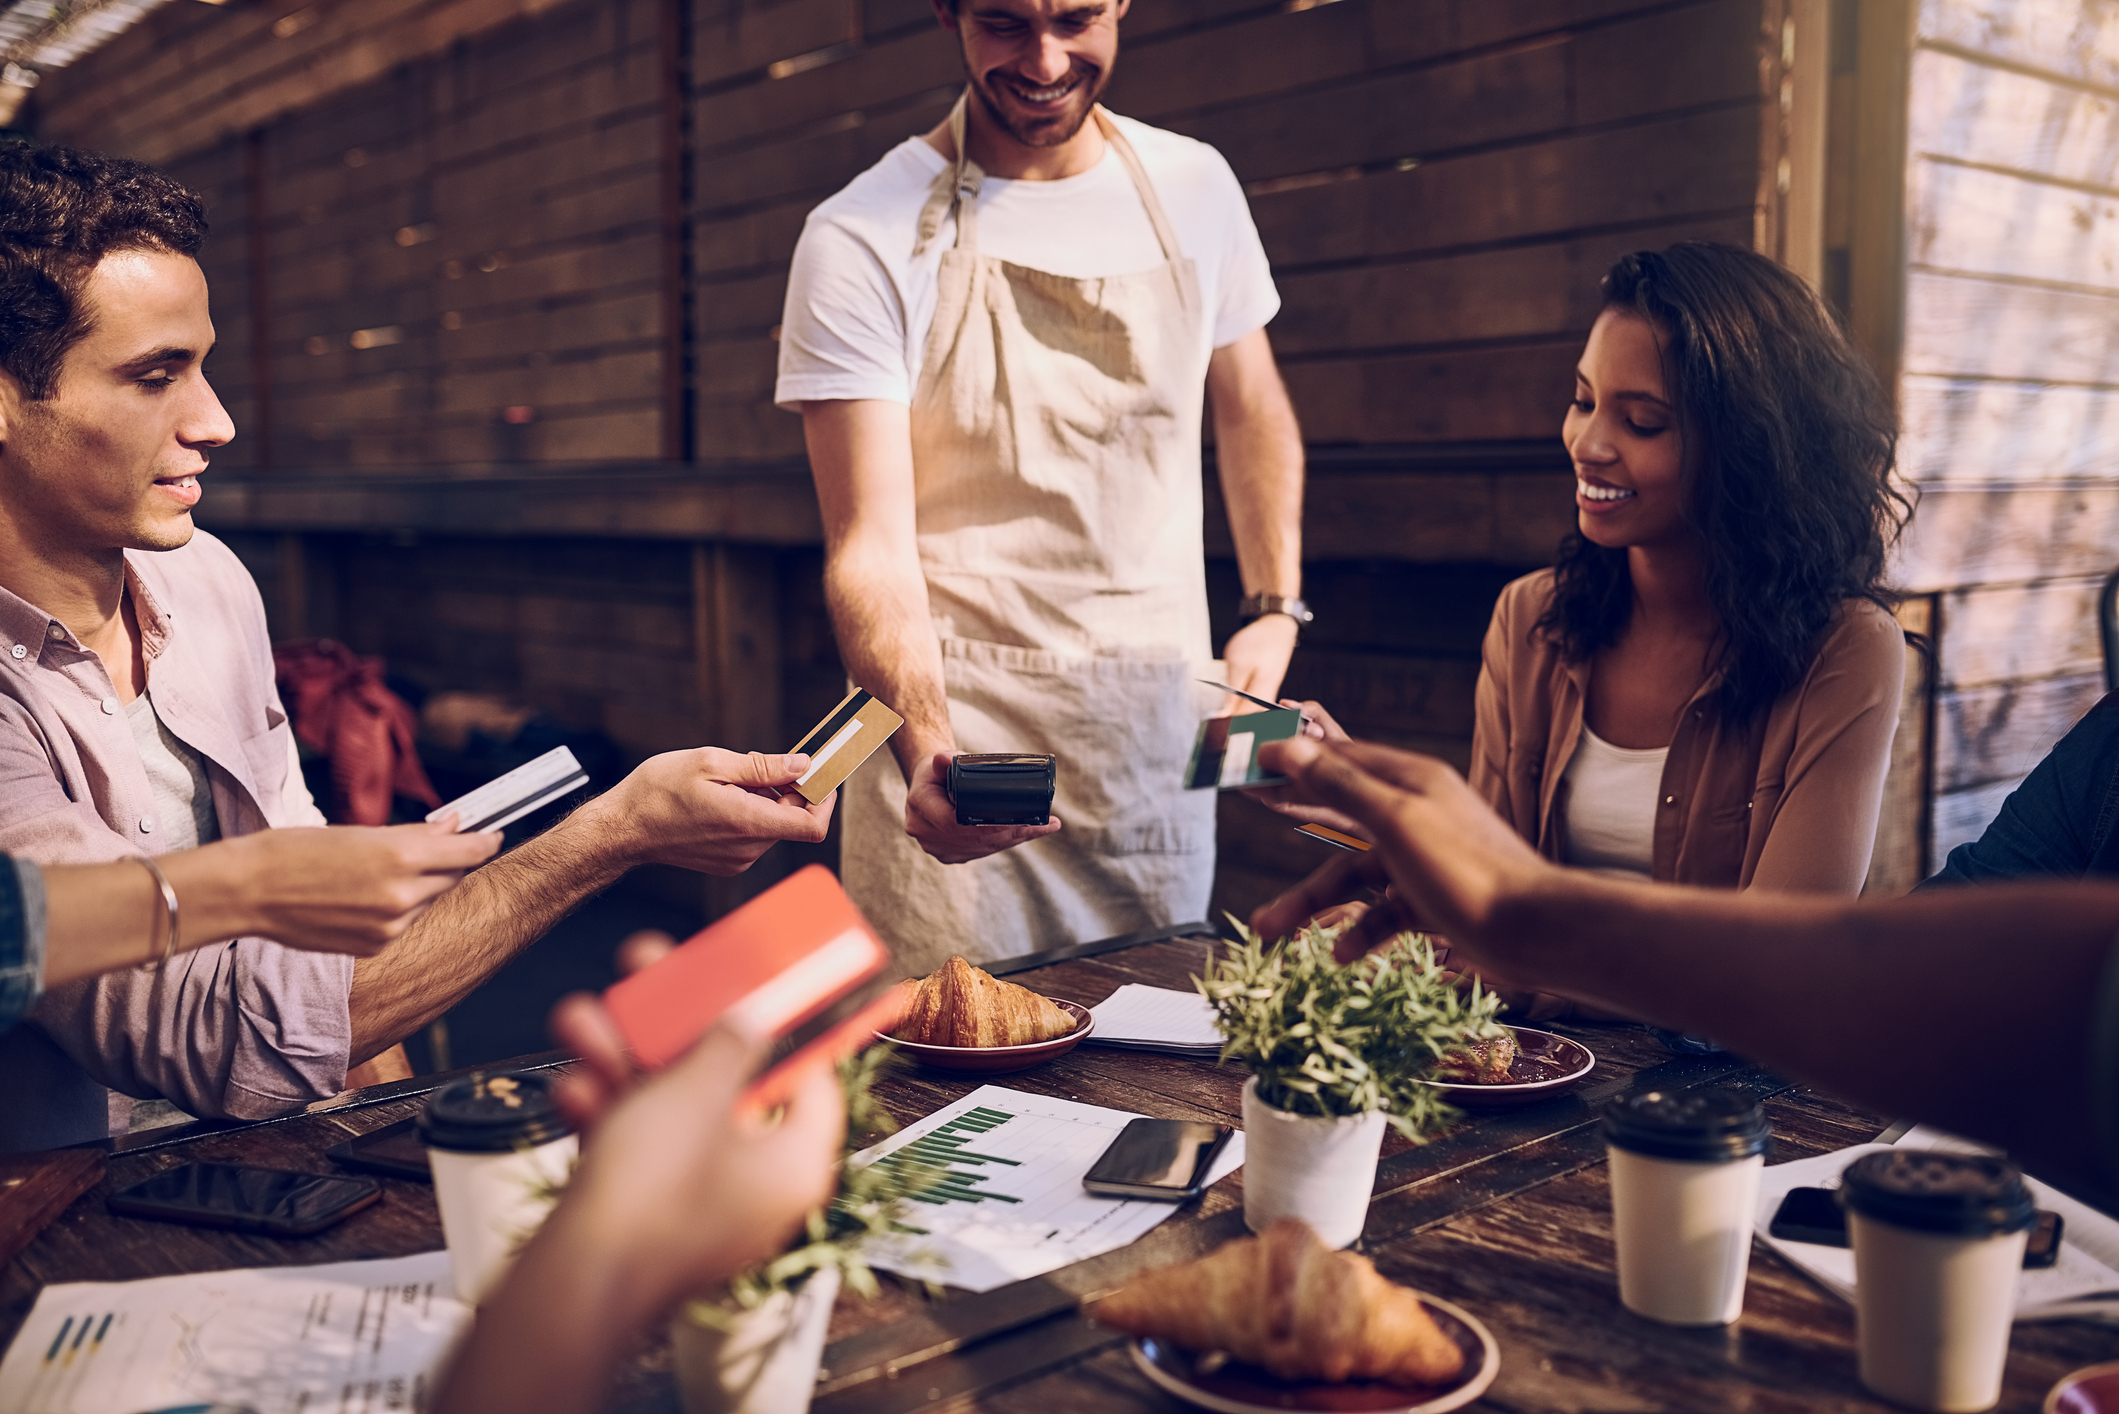 Separate Restaurant Checks Would Spur Harmony and Diverse Friendships